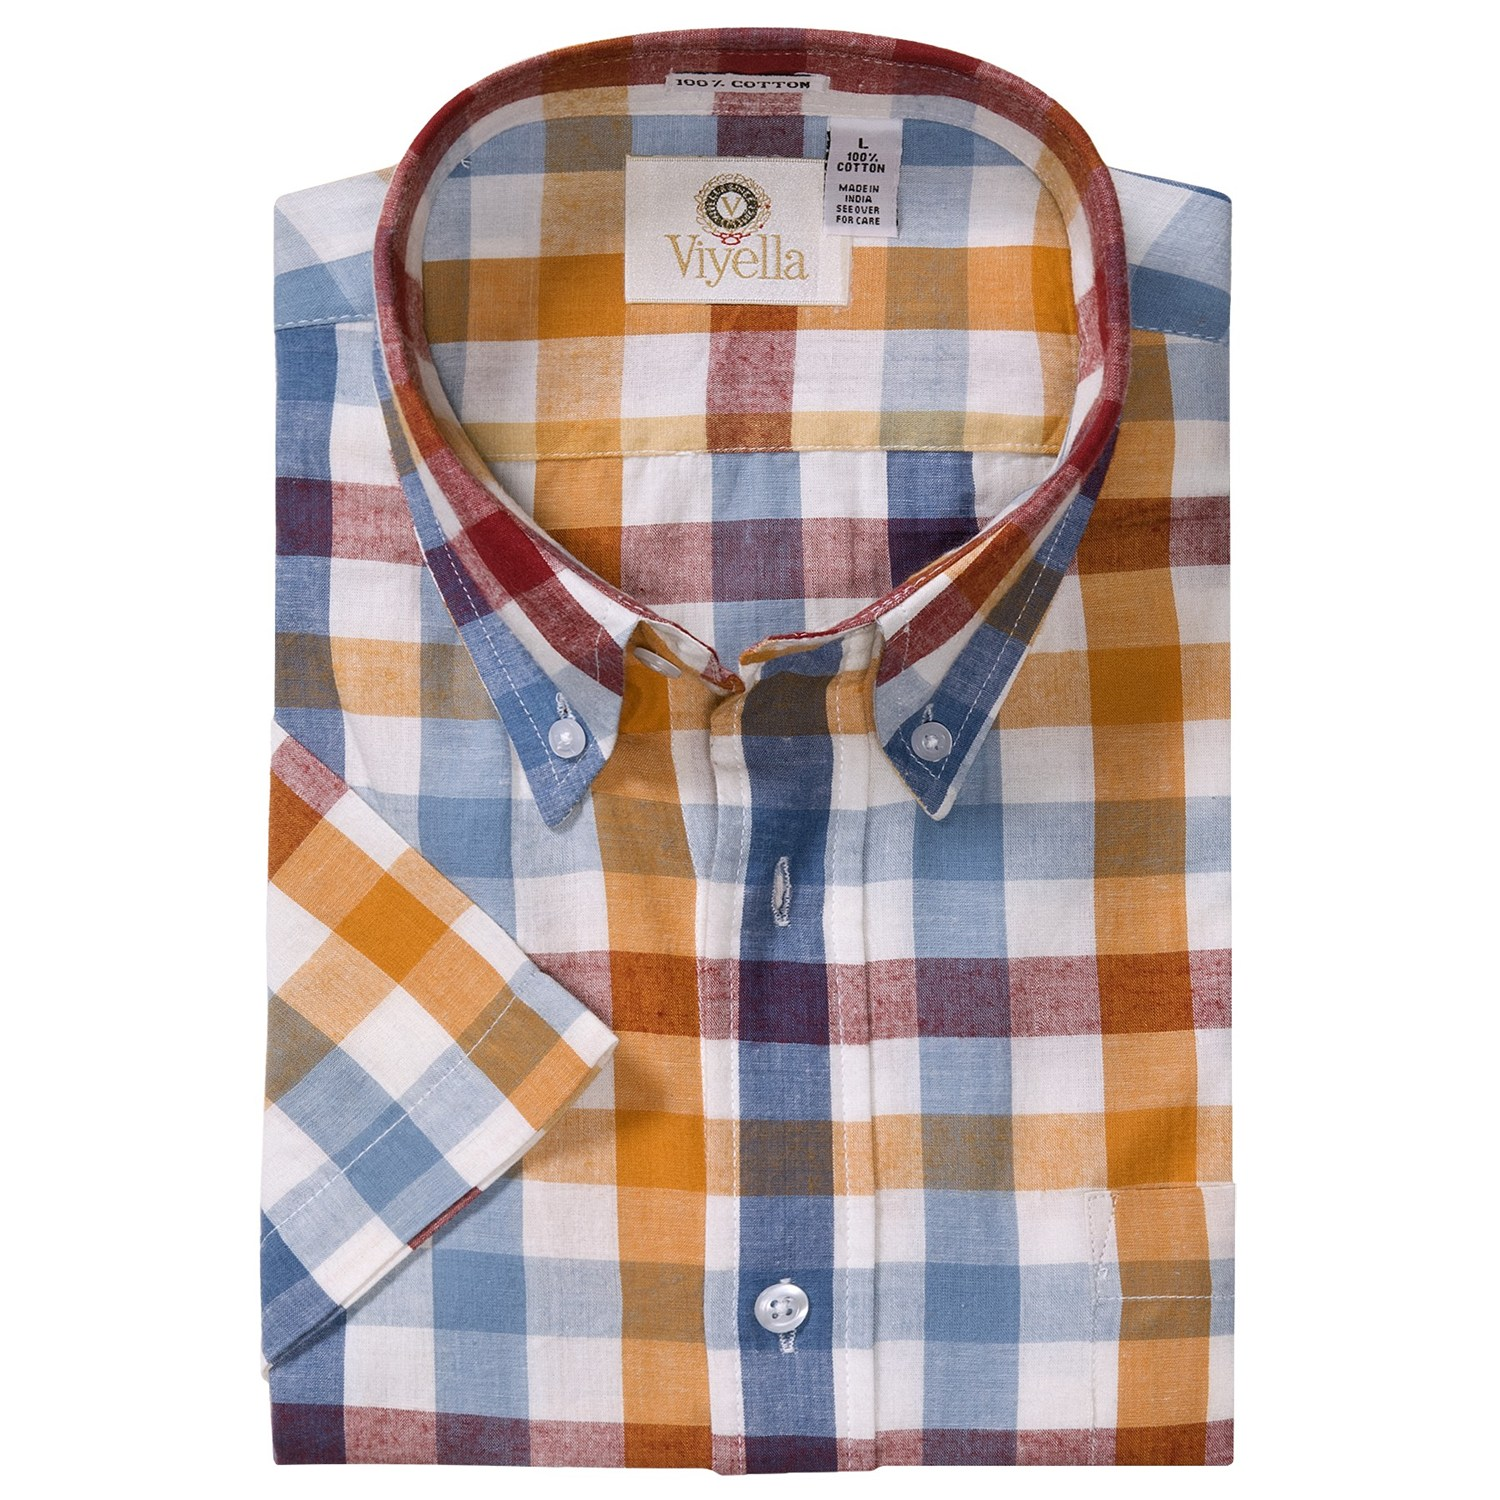 viyella-multi-madras-plaid-sport-shirt-short-sleeve-for-men-in-orange-blue-red~p~4045w_15~1500.jpg